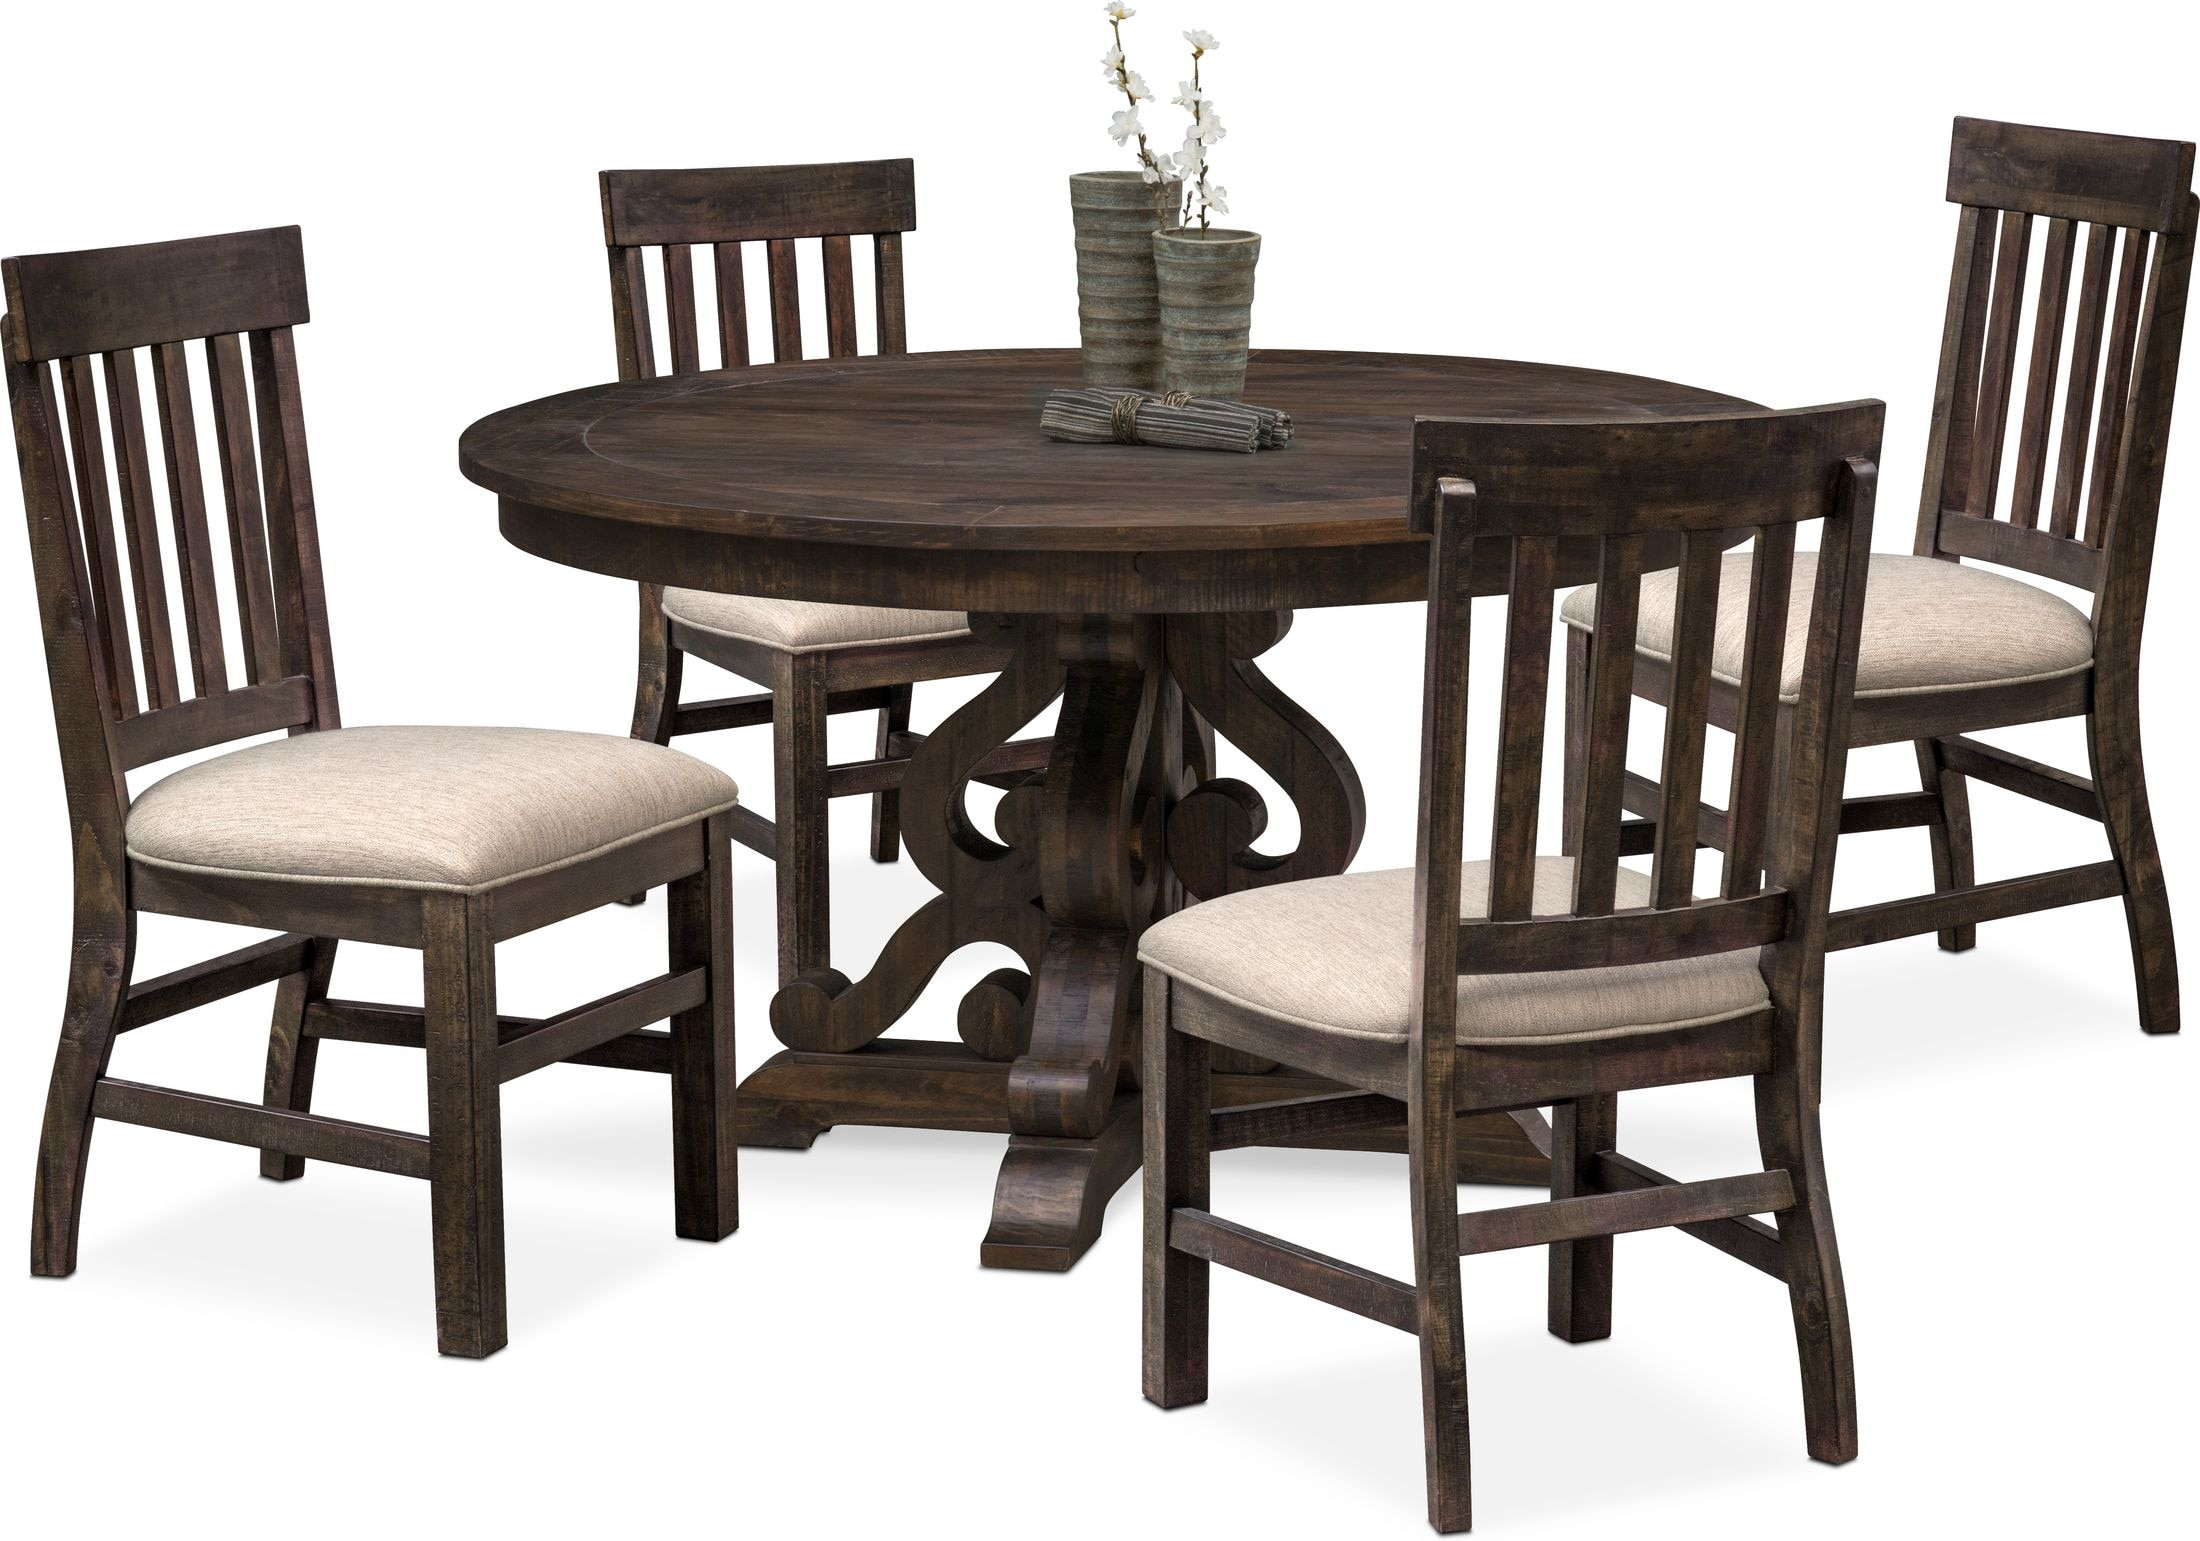 Dining Room Furniture - Charthouse Round Dining Table and 4 Side Chairs